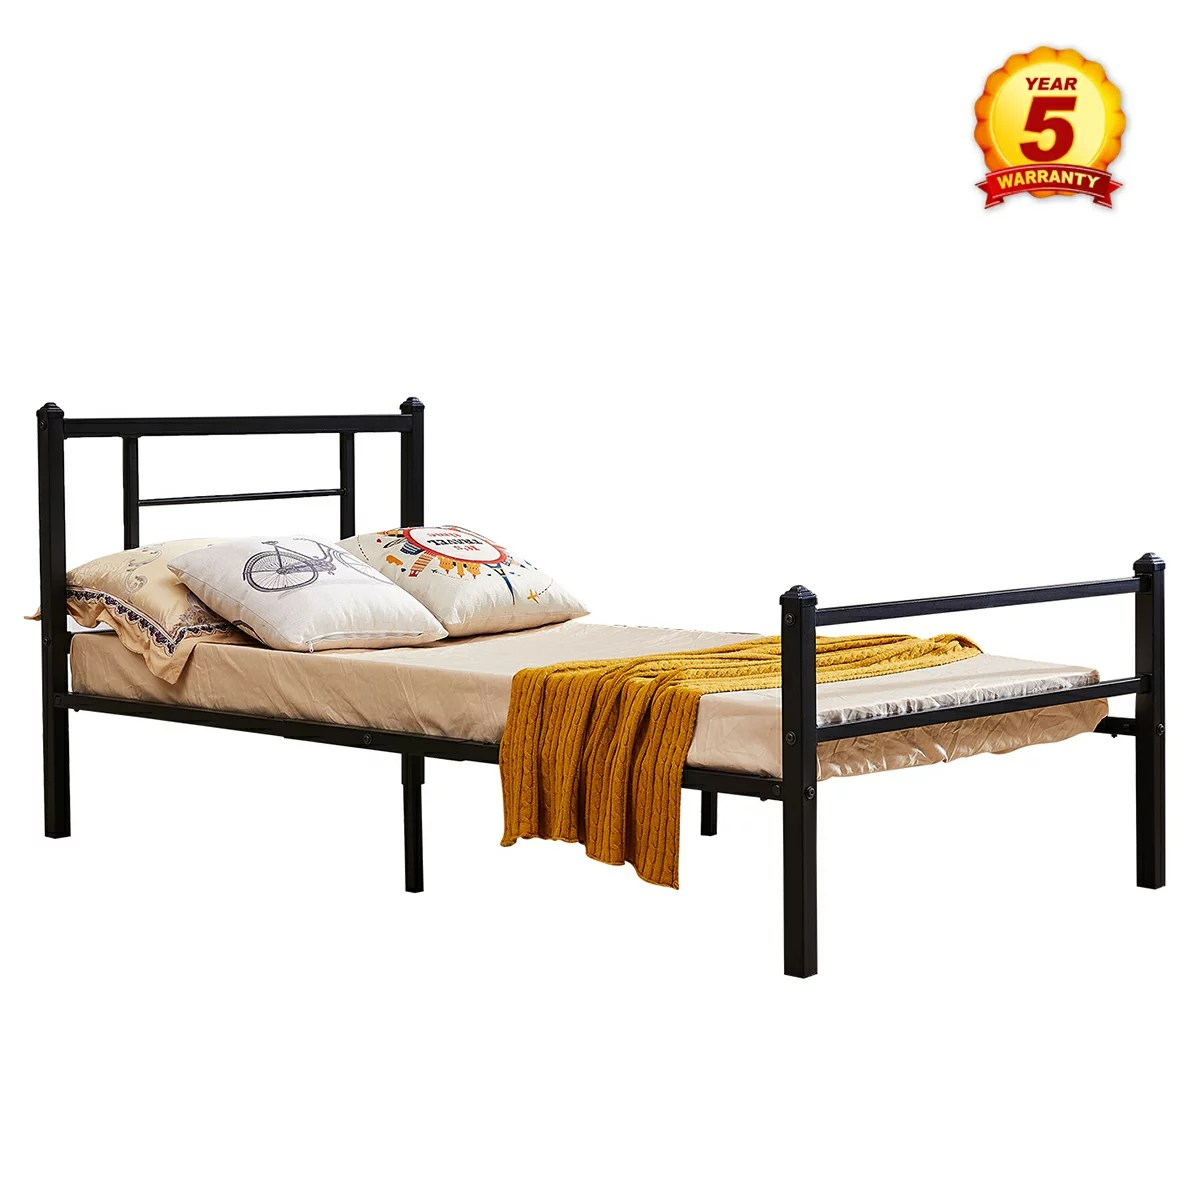 Metal Bed Headboards Mcombo Metal Bed Frame With Headboard And Footboard Xl Twin Size Black